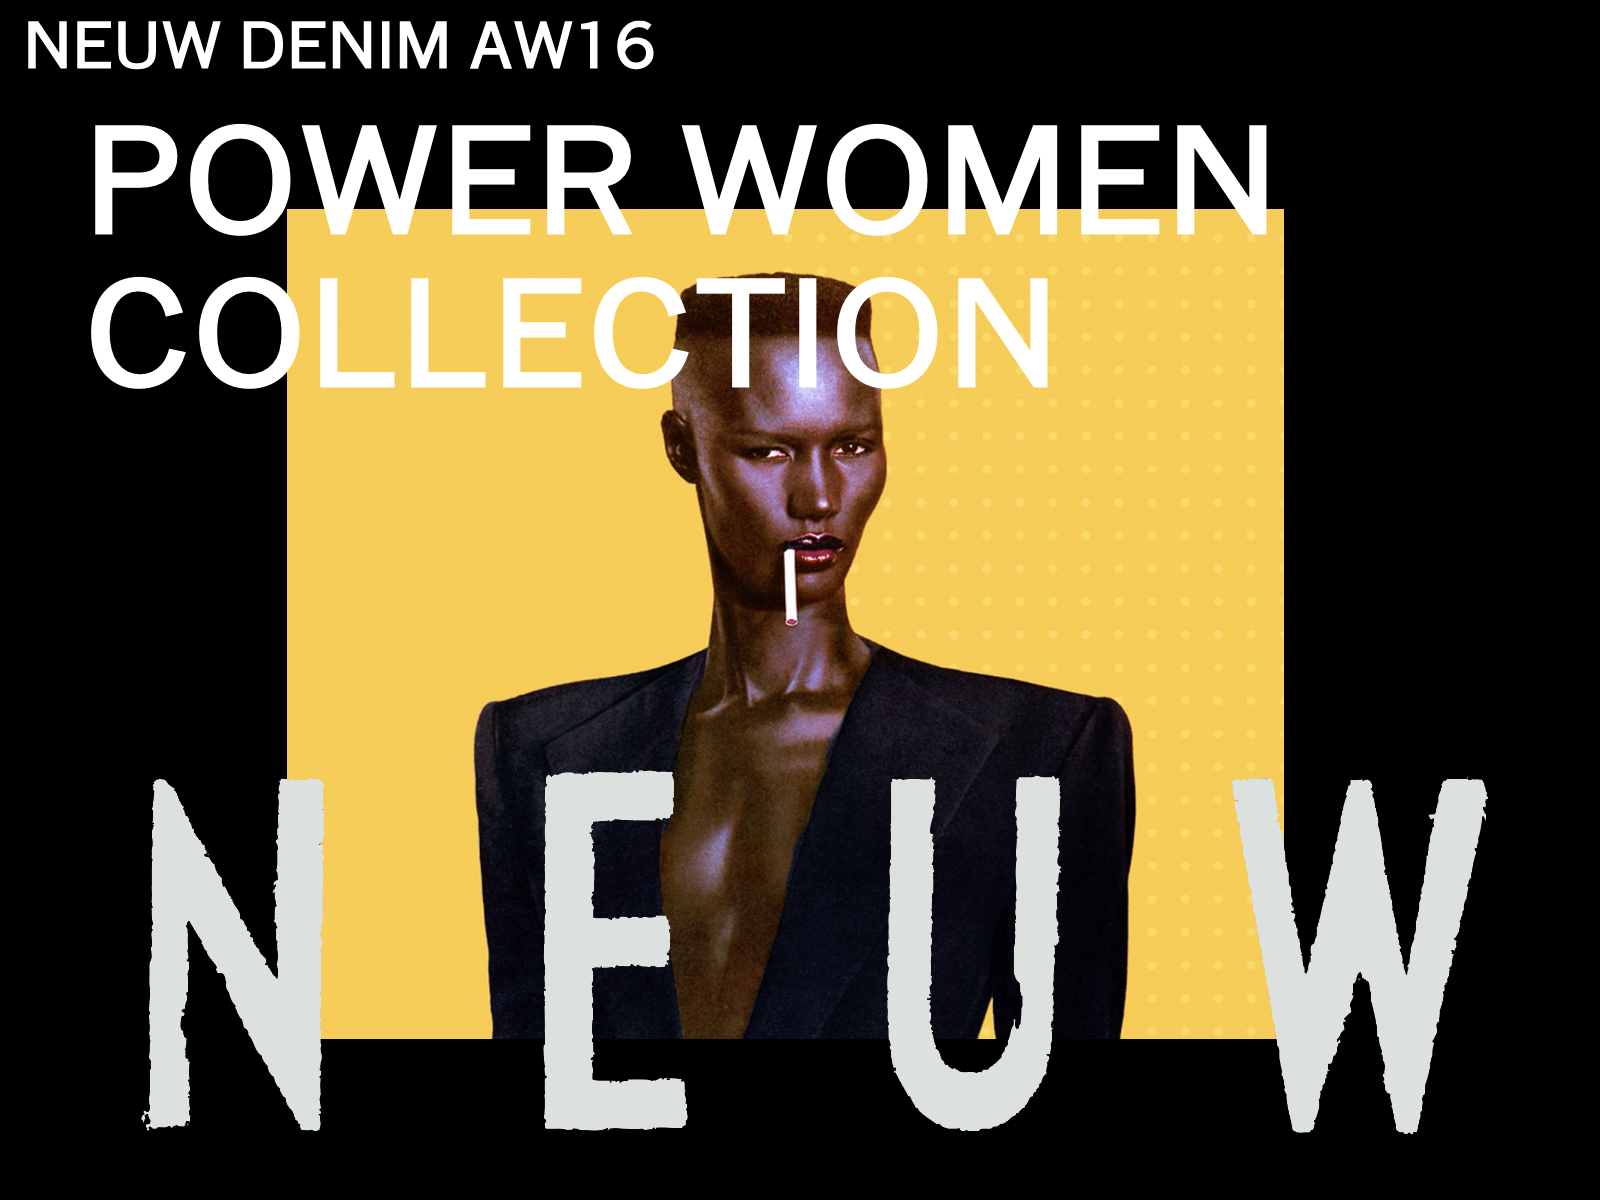 NEUW DENIM/FW16 POWER WOMEN COLLECTION